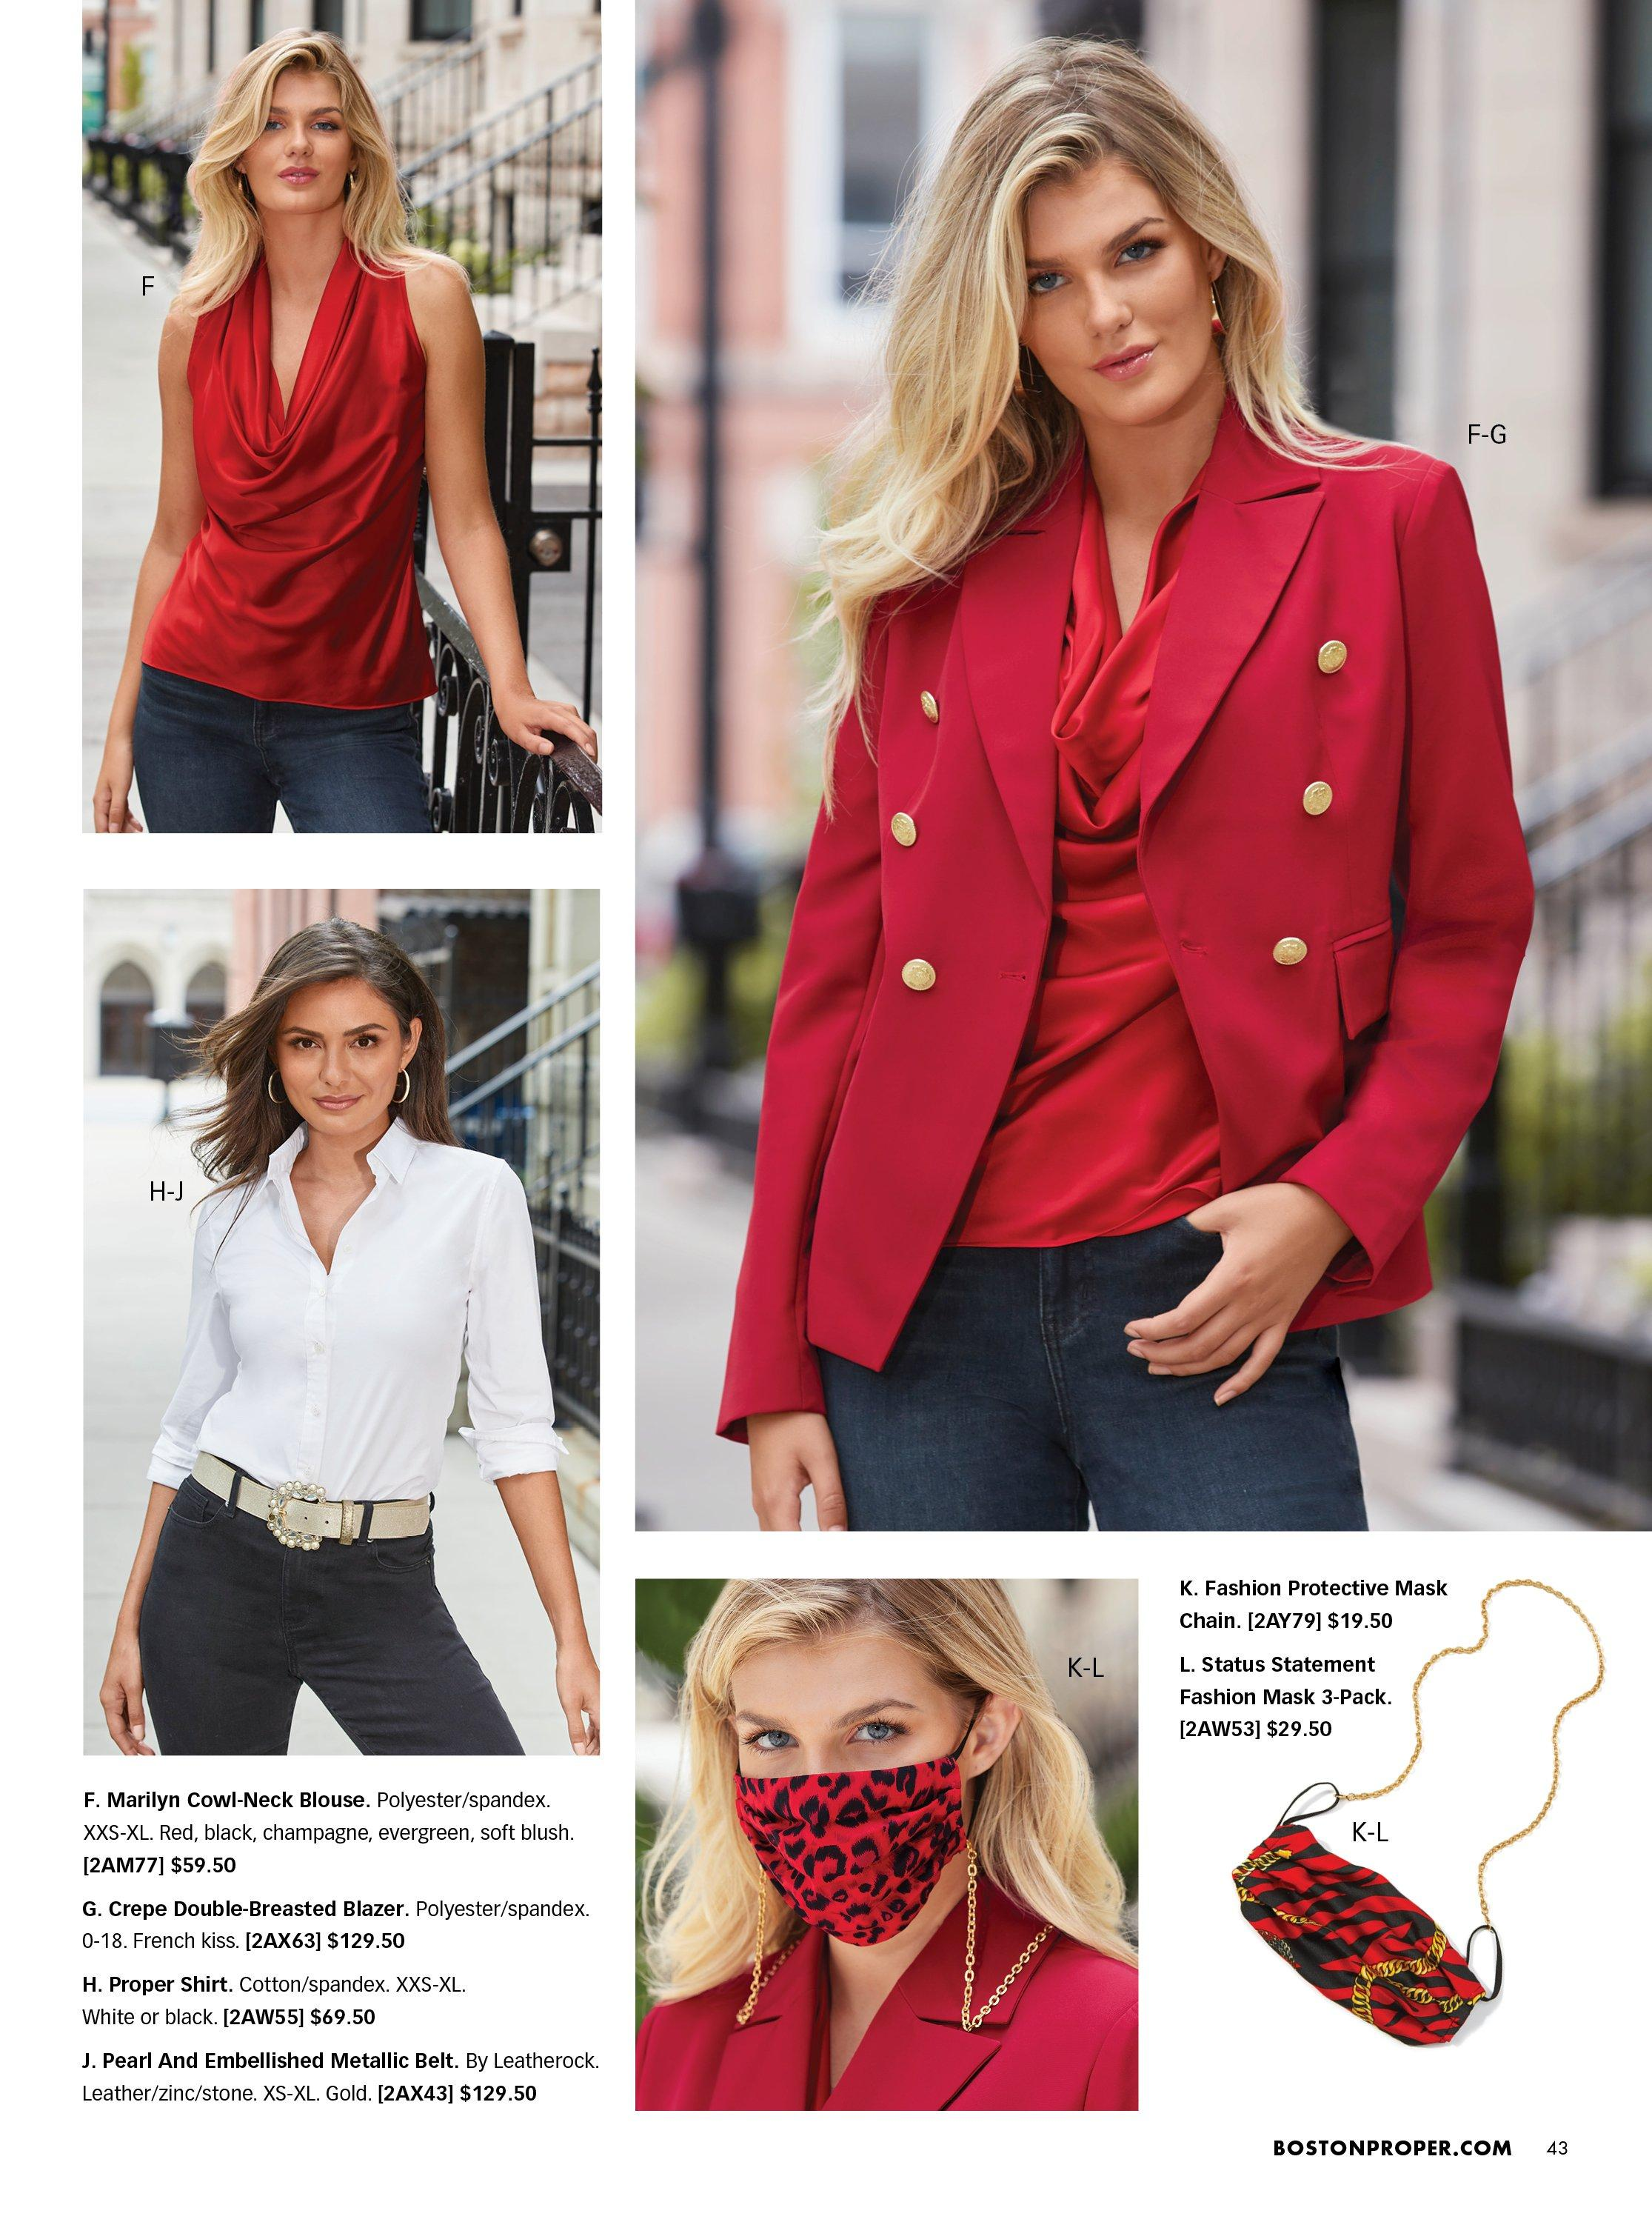 Top left model wearing a red cowl neck sleeveless blouse and jeans. bottom left model wearing a white button down blouse, silver rhinestone belt, and jeans. top right model wearing a red blazer, red cowl neck sleeveless blouse, and jeans. bottom right model wearing a read leopard print face mask and gold chain.